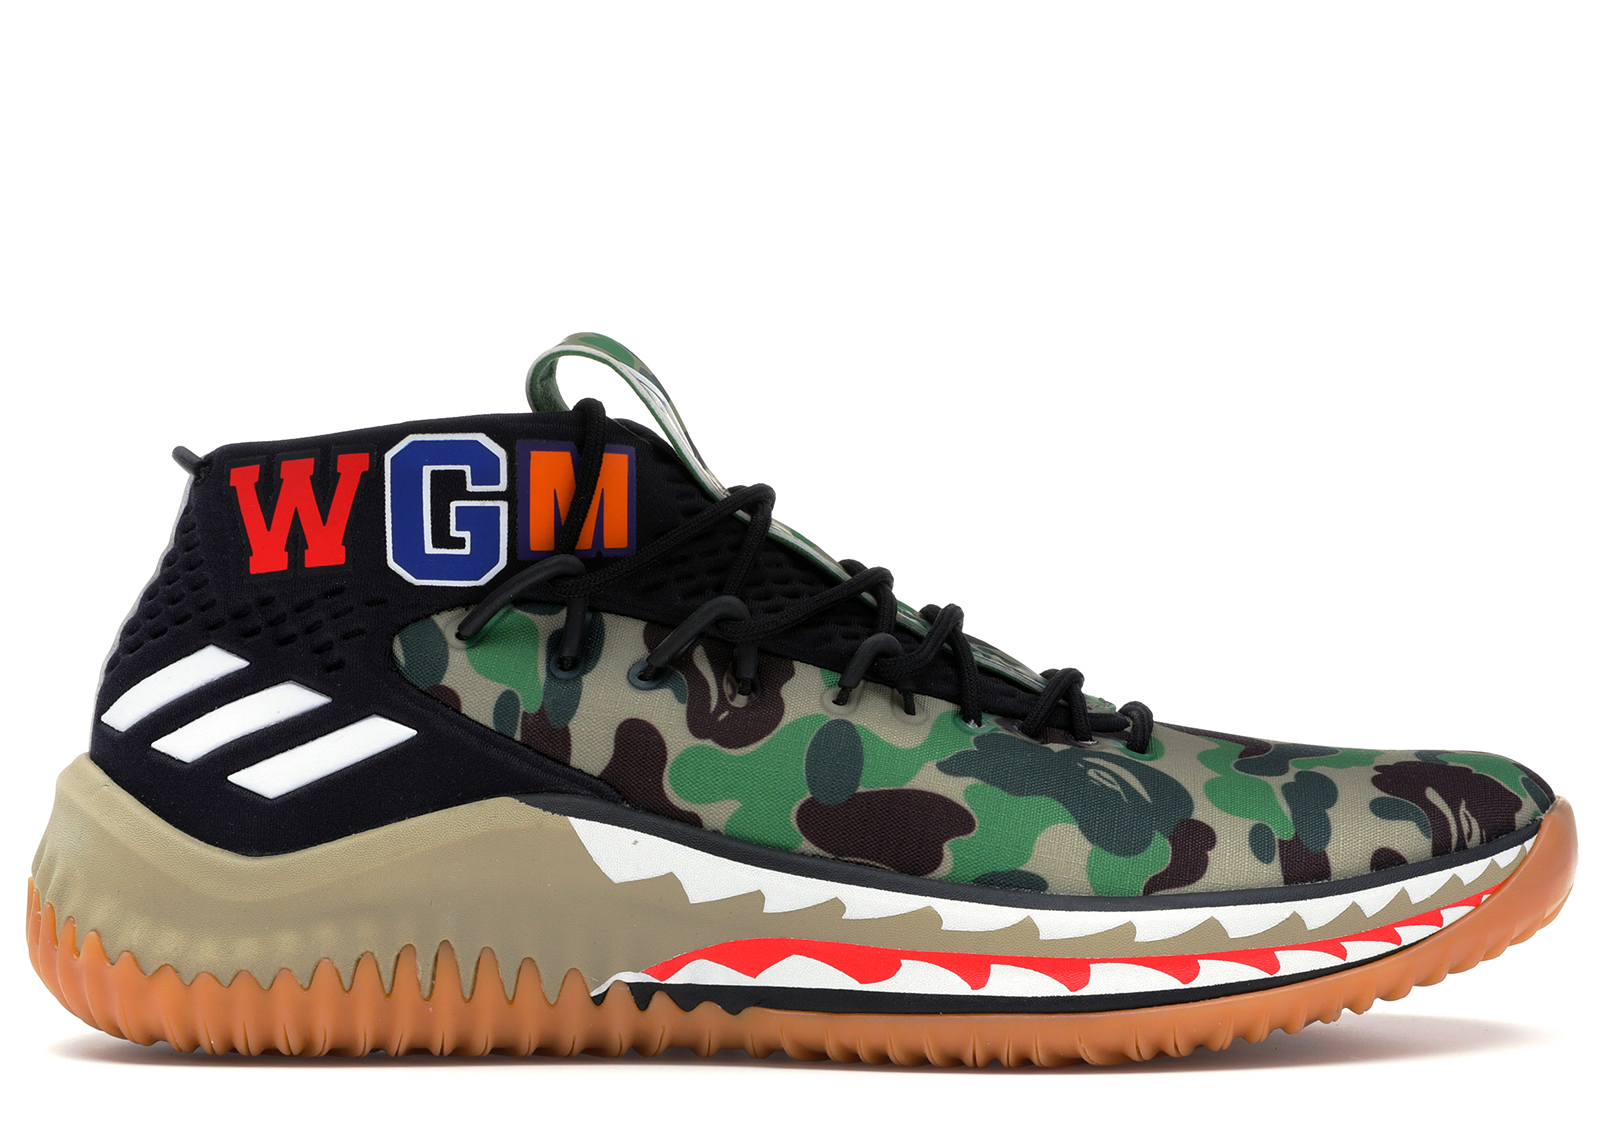 BAPE x Adidas Dame 4 Camo Pack for 2018 | Straatosphere